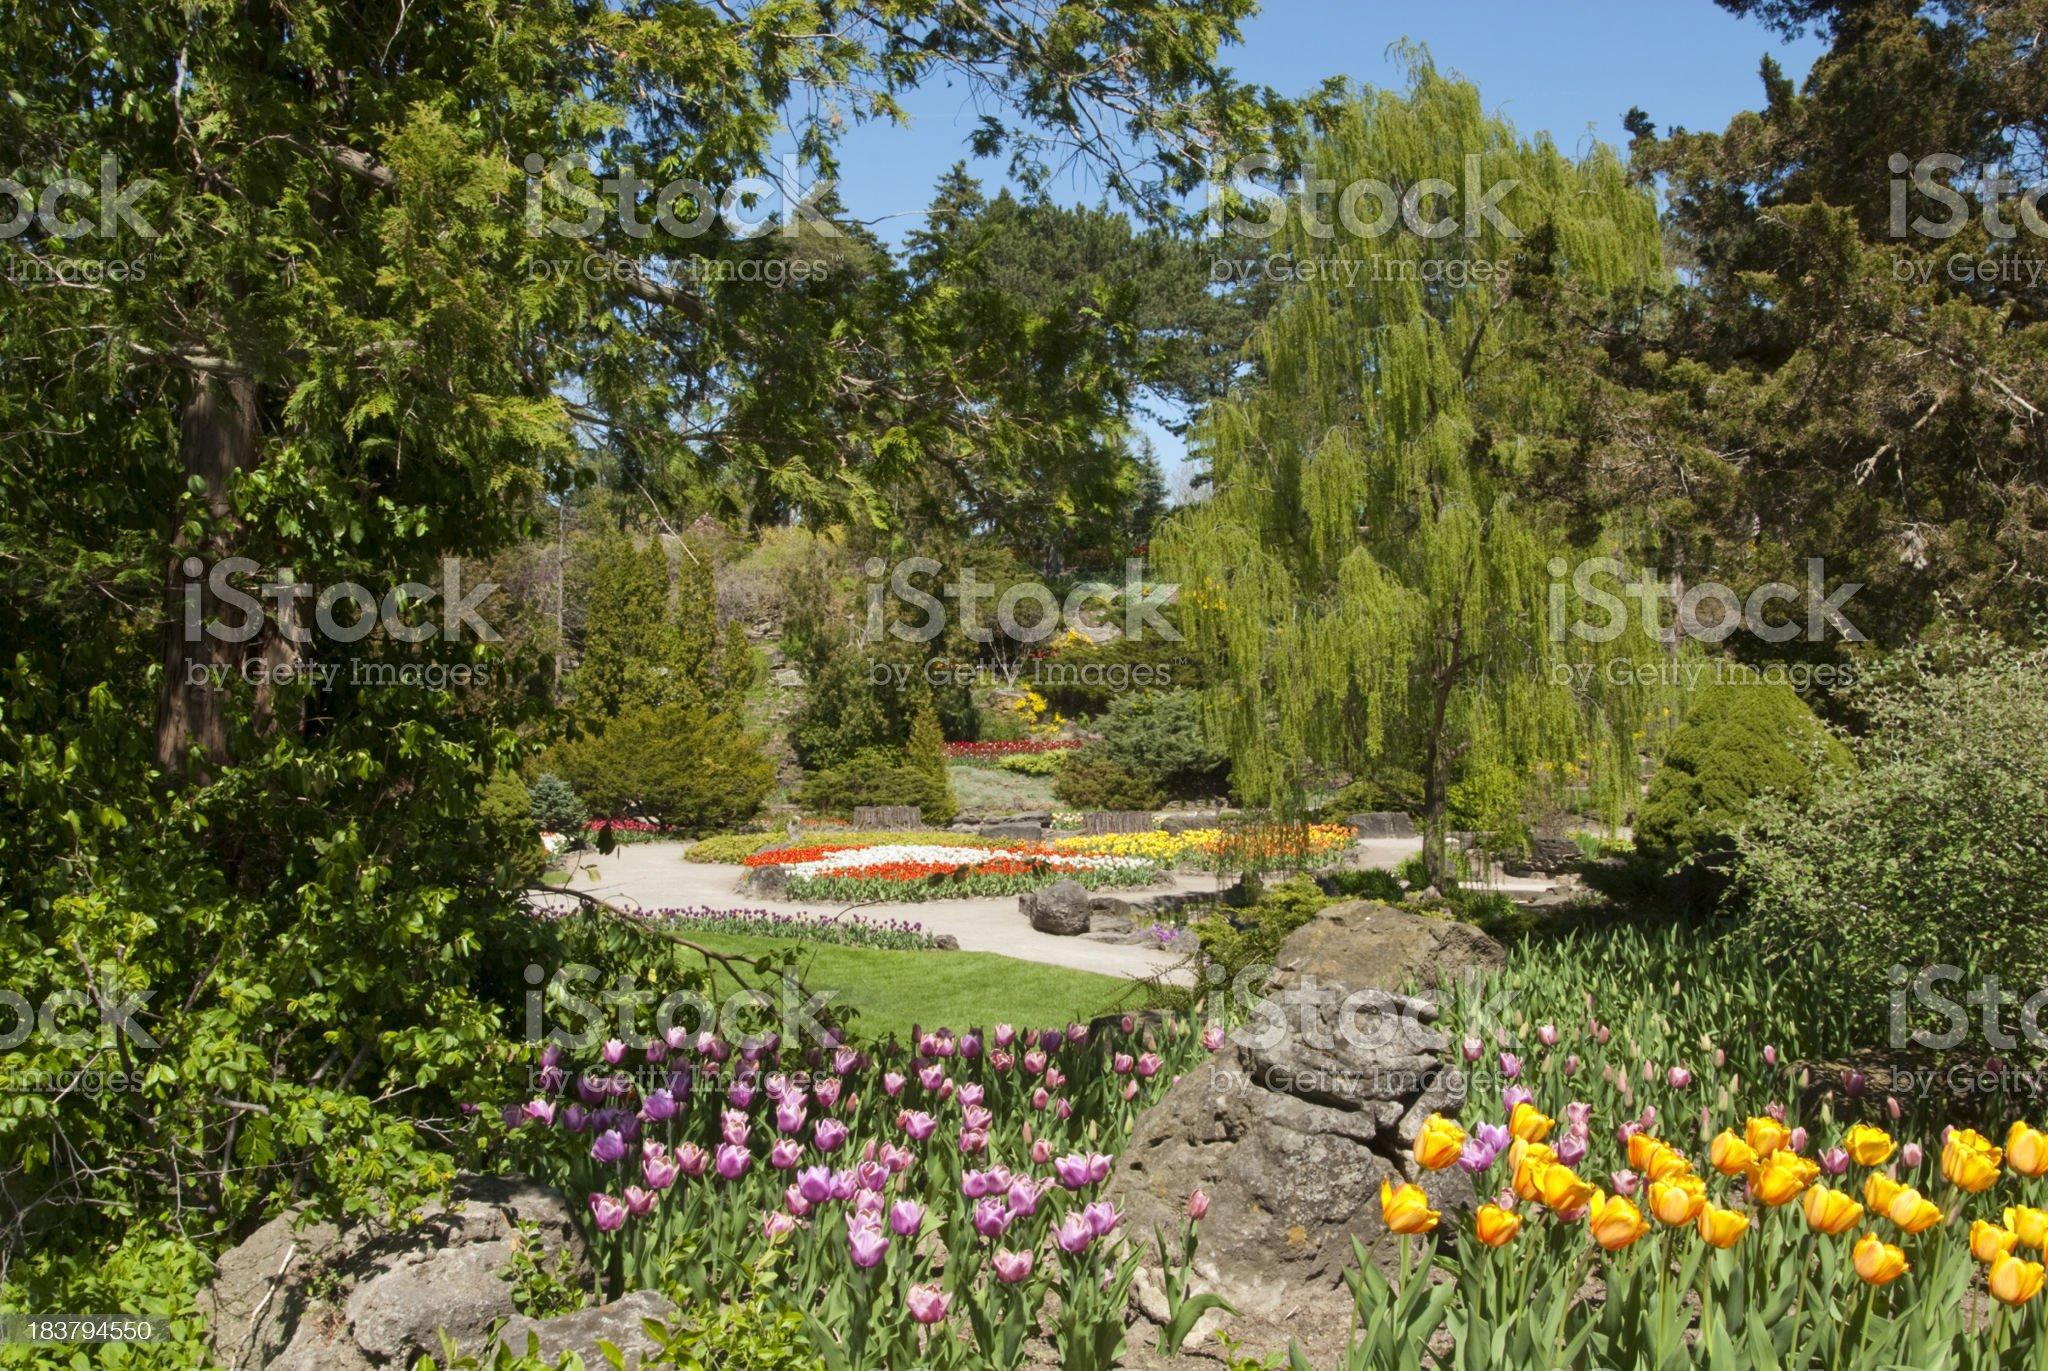 Tulips in Bloom royalty-free stock photo